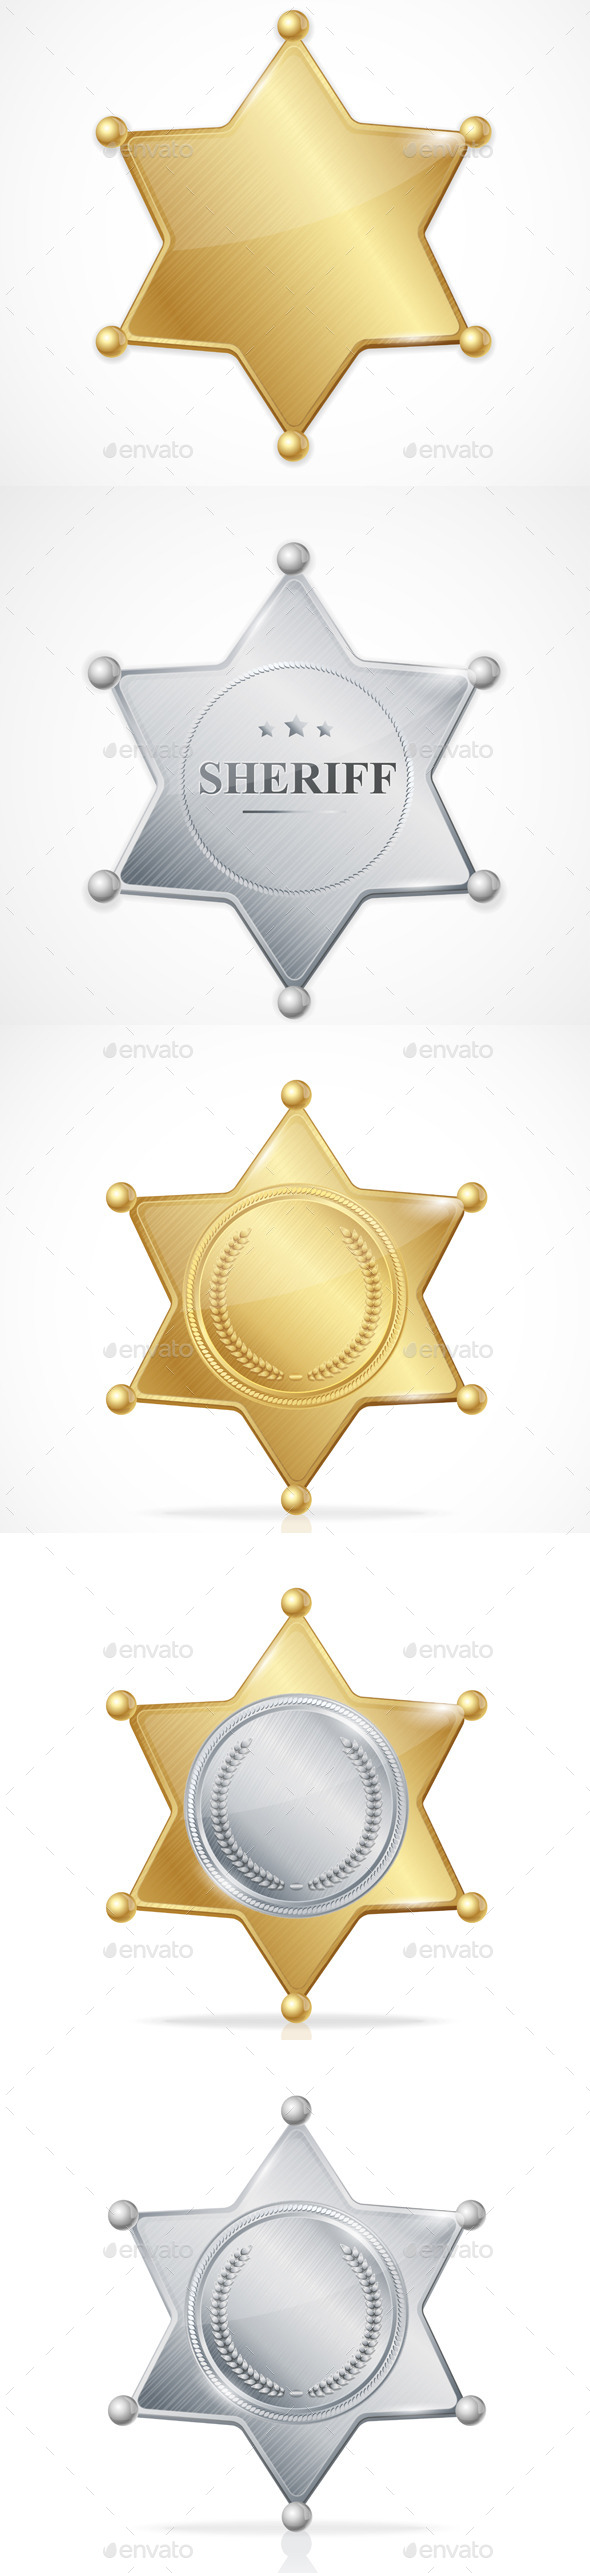 Vector Sheriff Badge Star Set - Objects Vectors